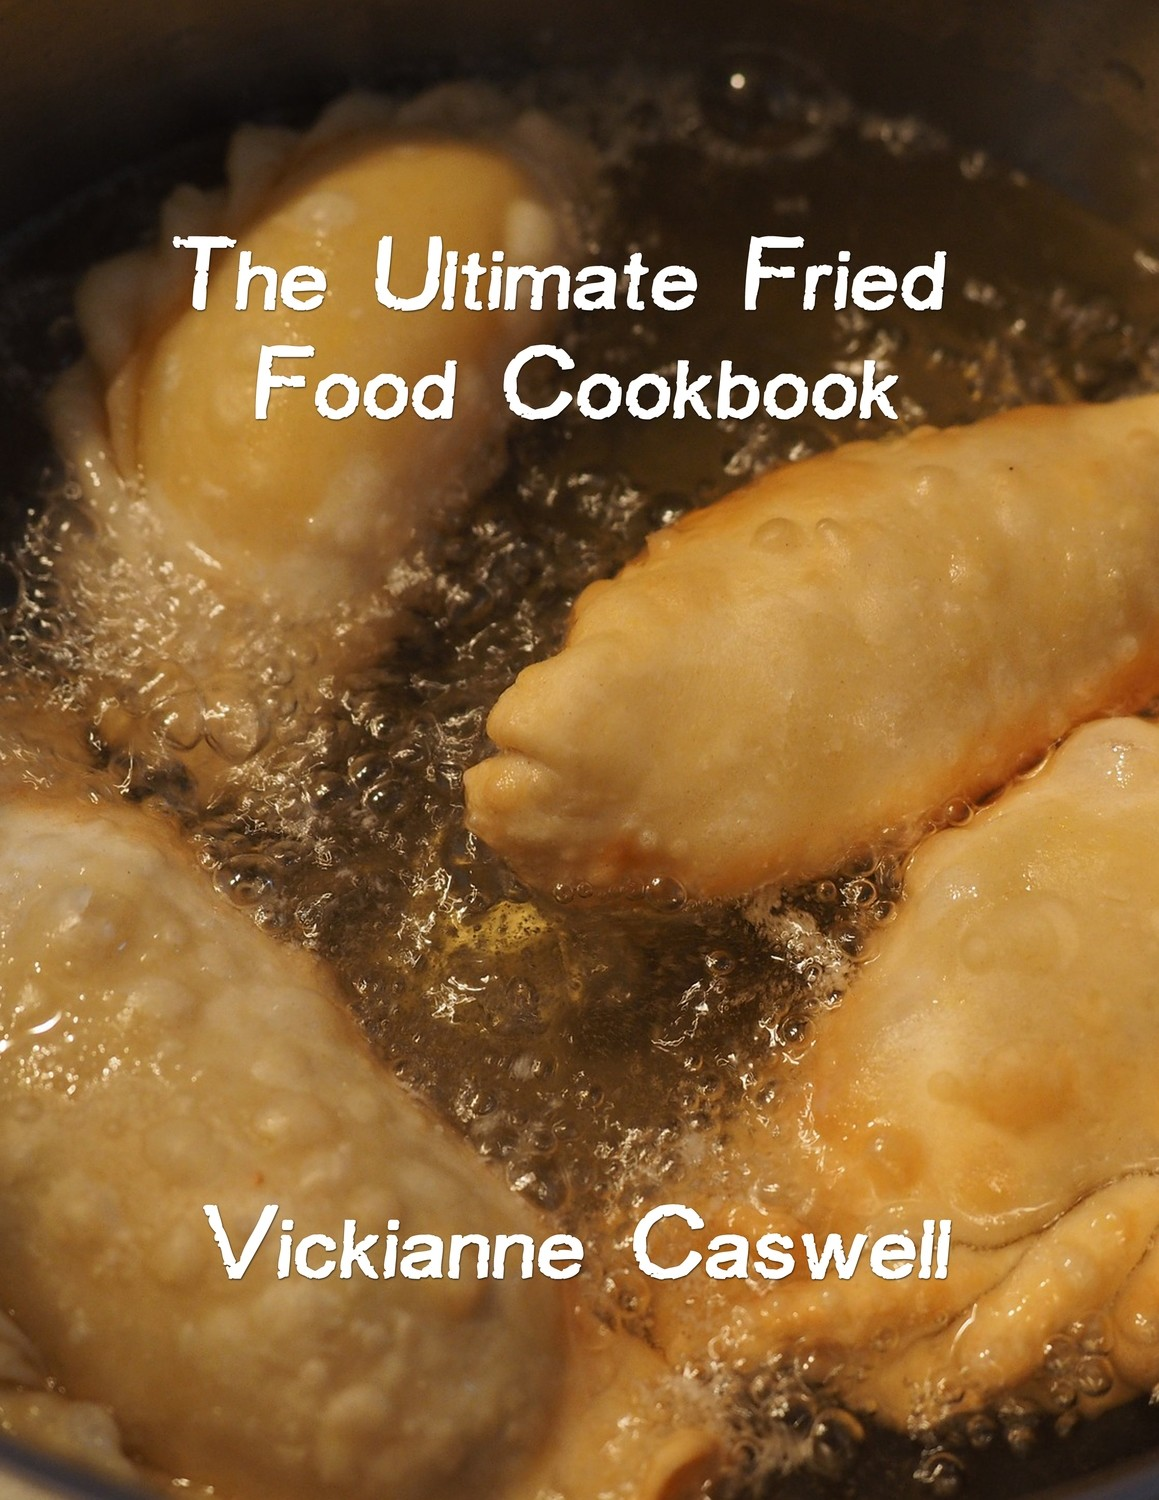 The Ultimate Fried Foods Cookbook